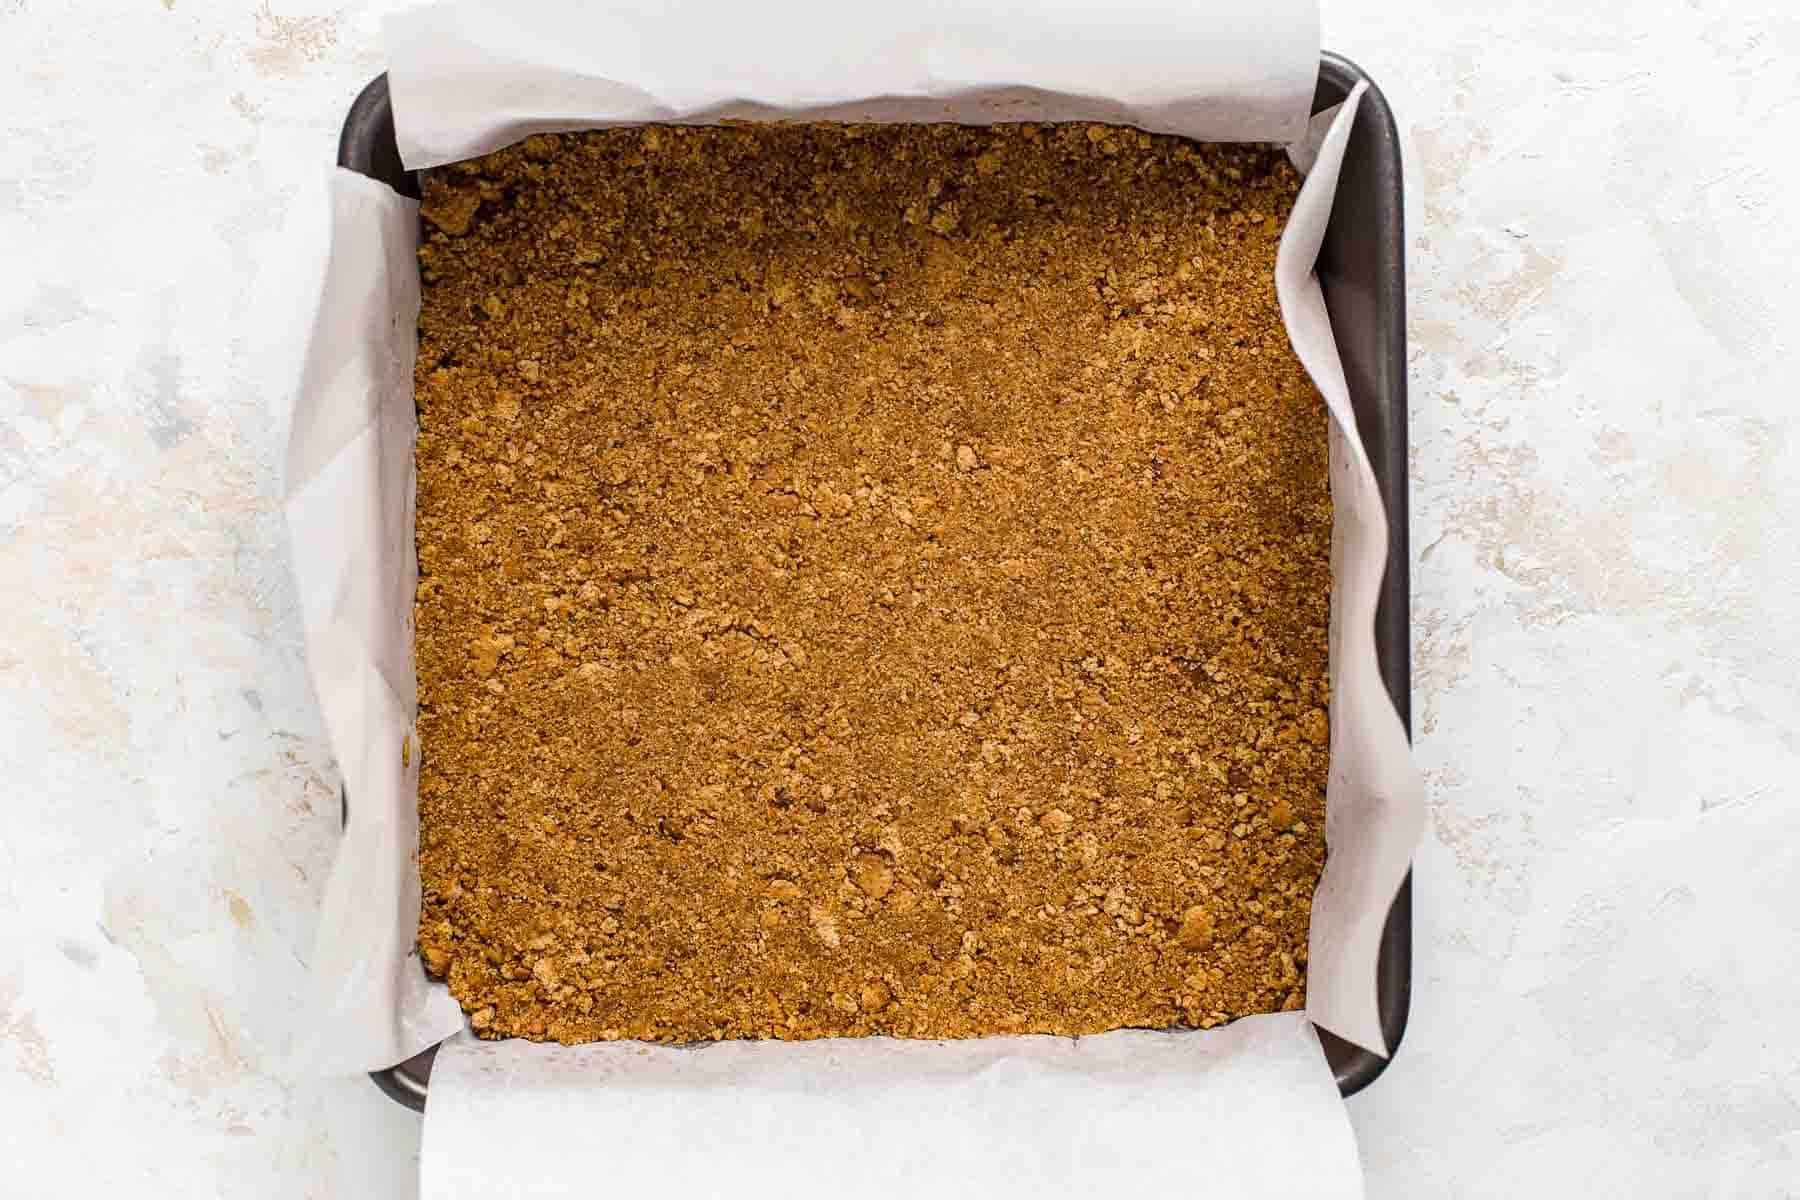 graham cracker crust in pan